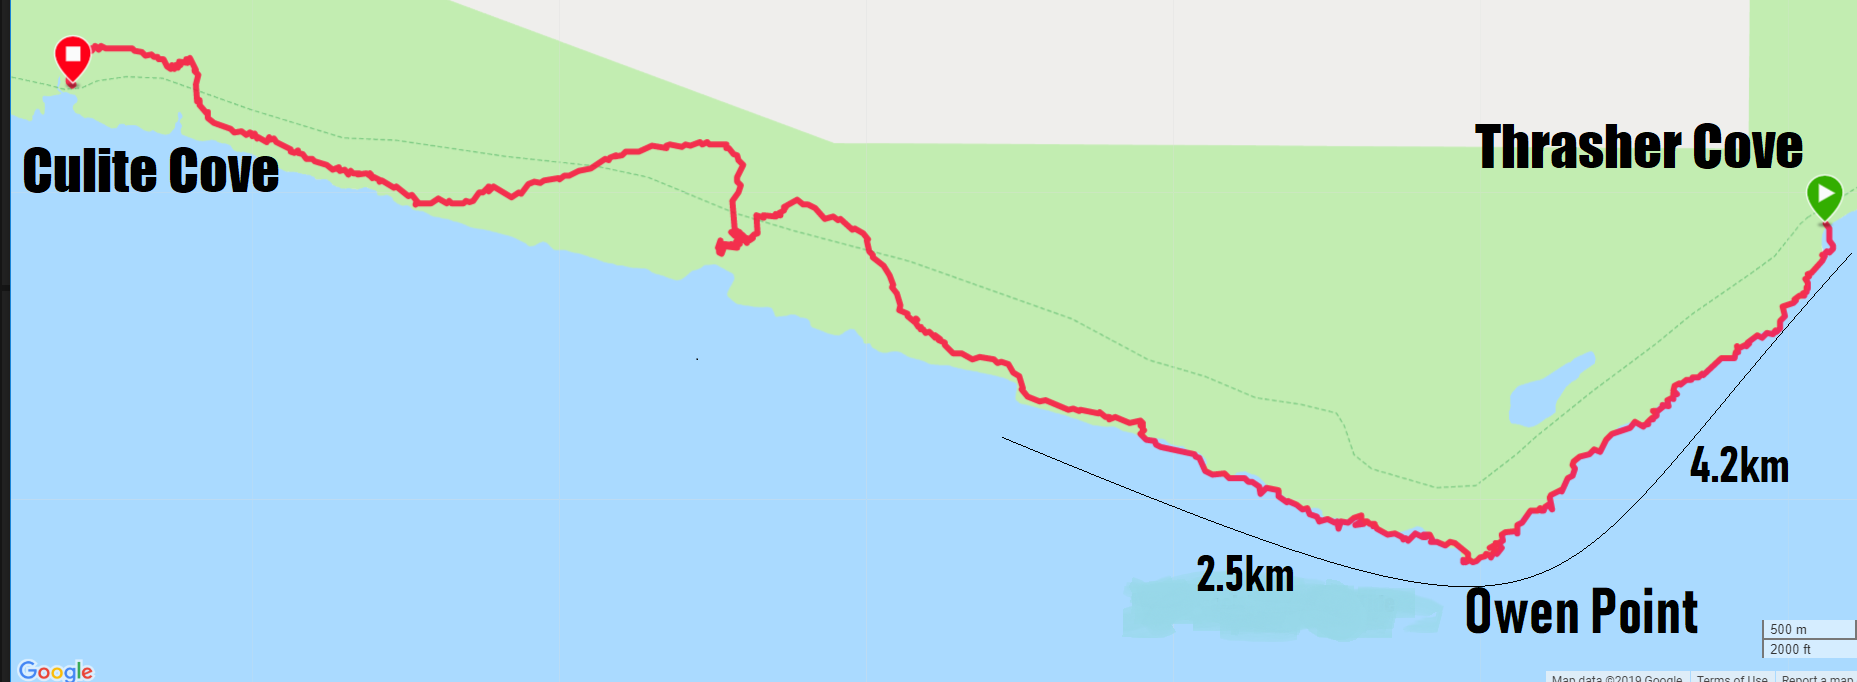 West Coast Trail Map Day 2 - Thraser Cove to Culite Cove